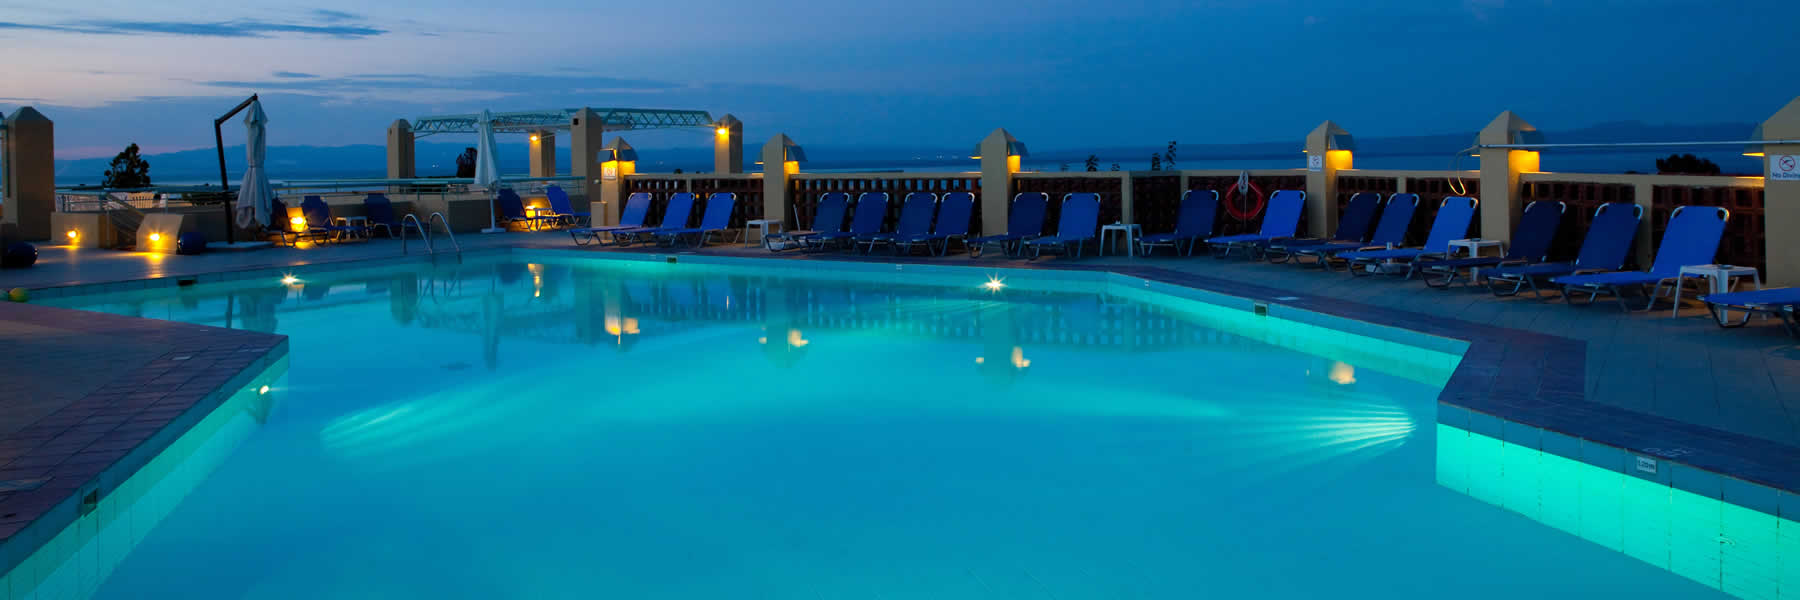 Hotel Chalkidiki Daphne Holiday Club